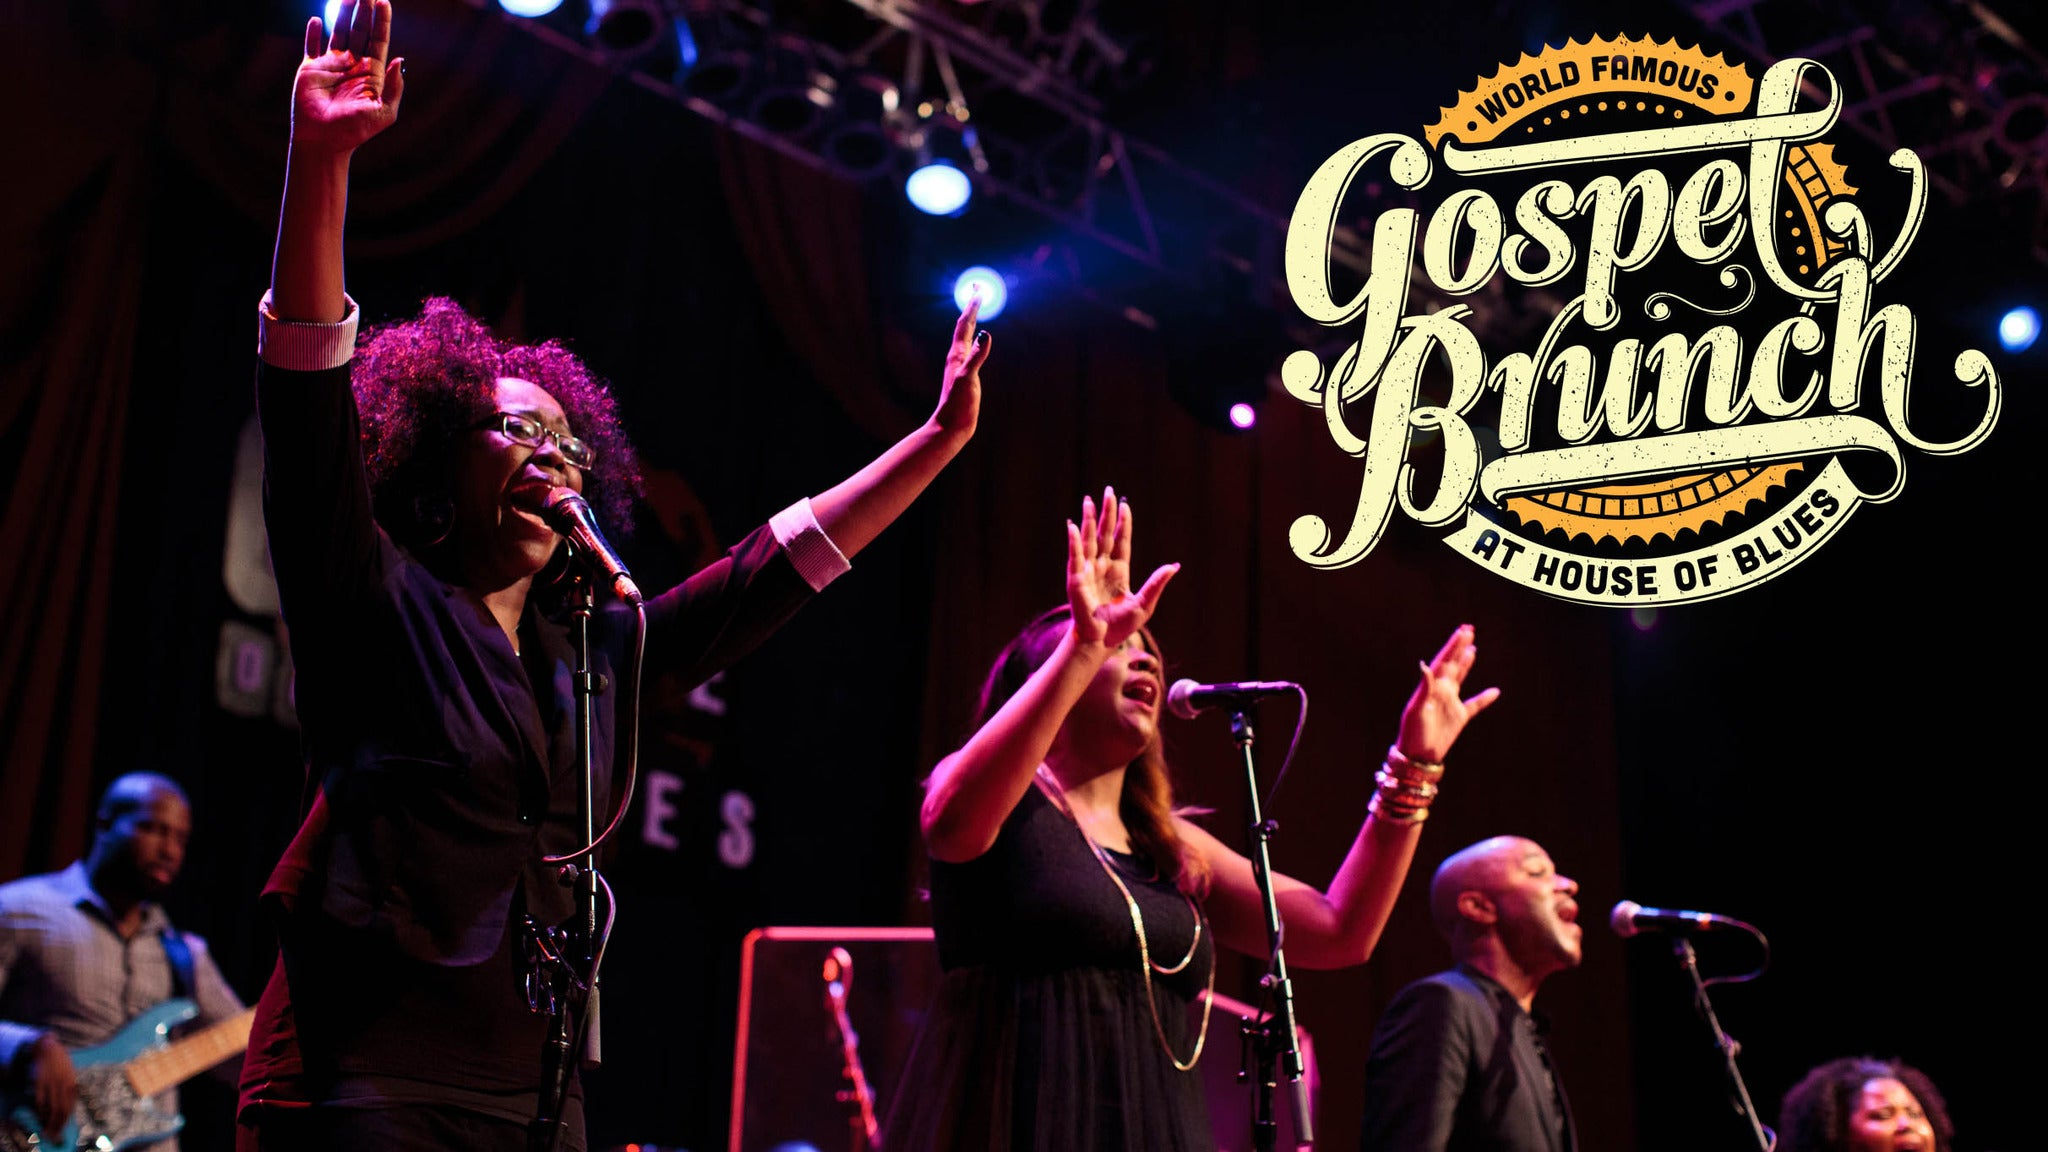 Gospel Brunch at House of Blues New Orleans